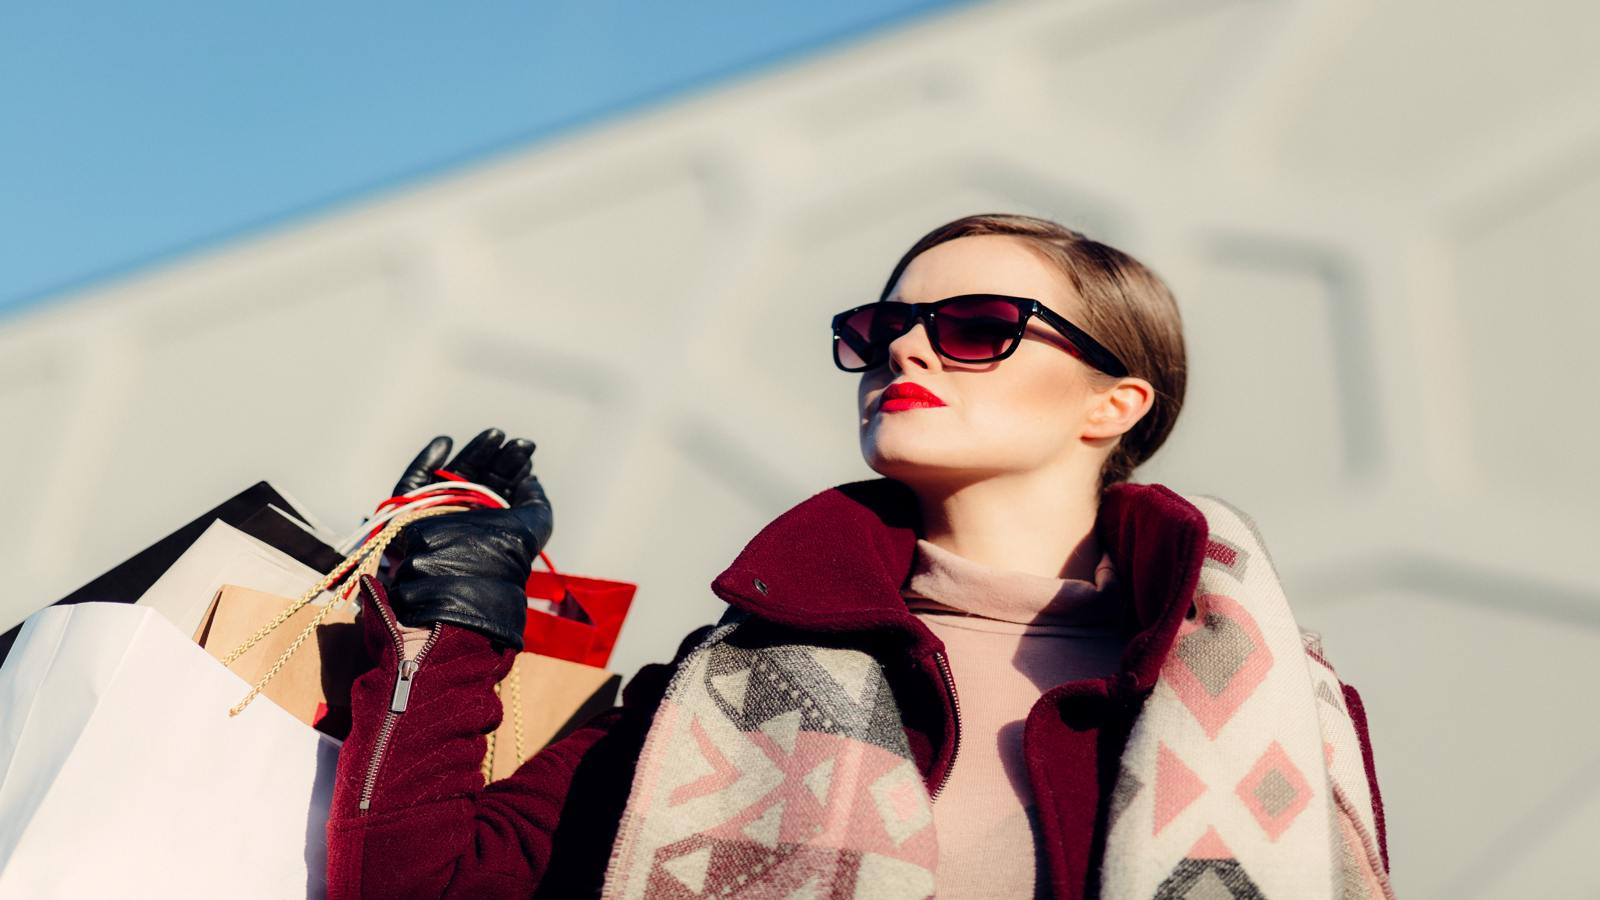 Spanish Clothes Vocabulary: 108 Words Every Fashion-Conscious Spanish Learner Should Know